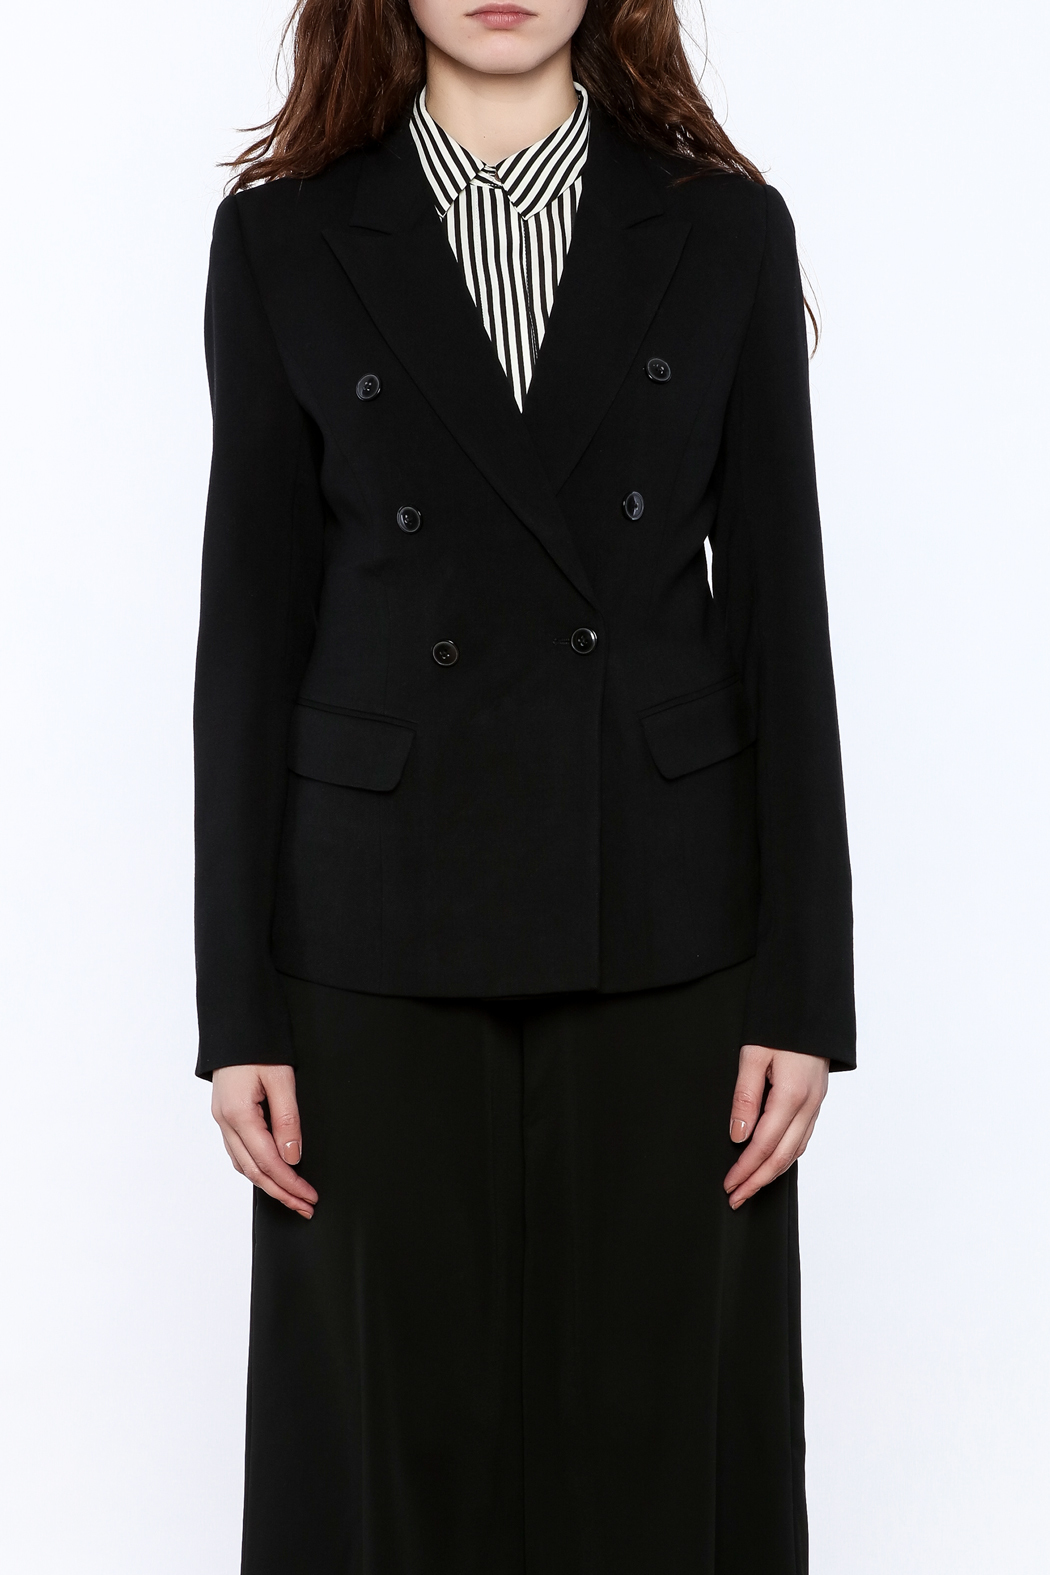 BEULAH STYLE Double Breasted Blazer - Side Cropped Image